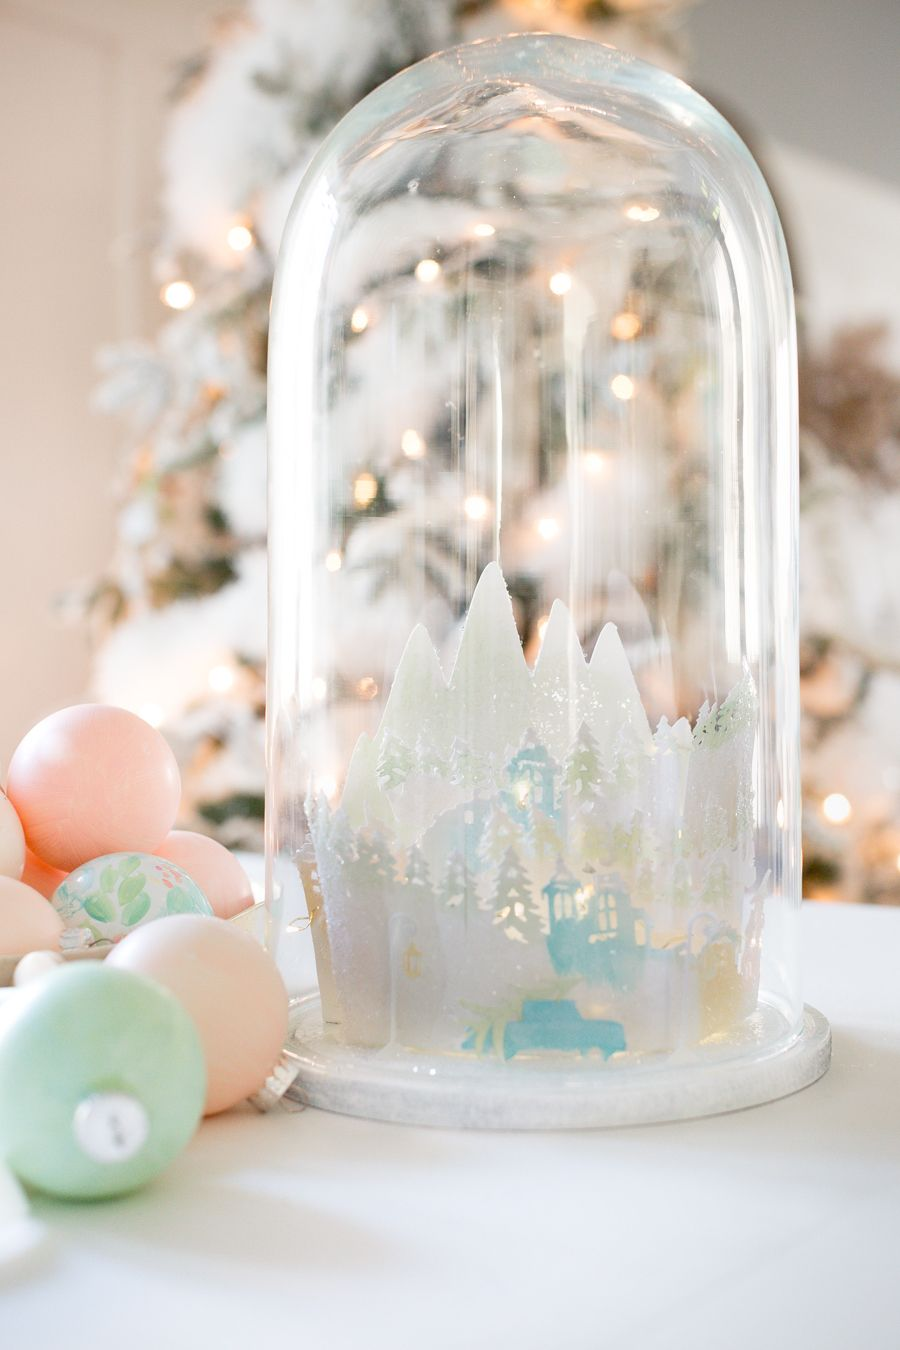 Pin by Cozy Little House on Christmas Crafts & Decor